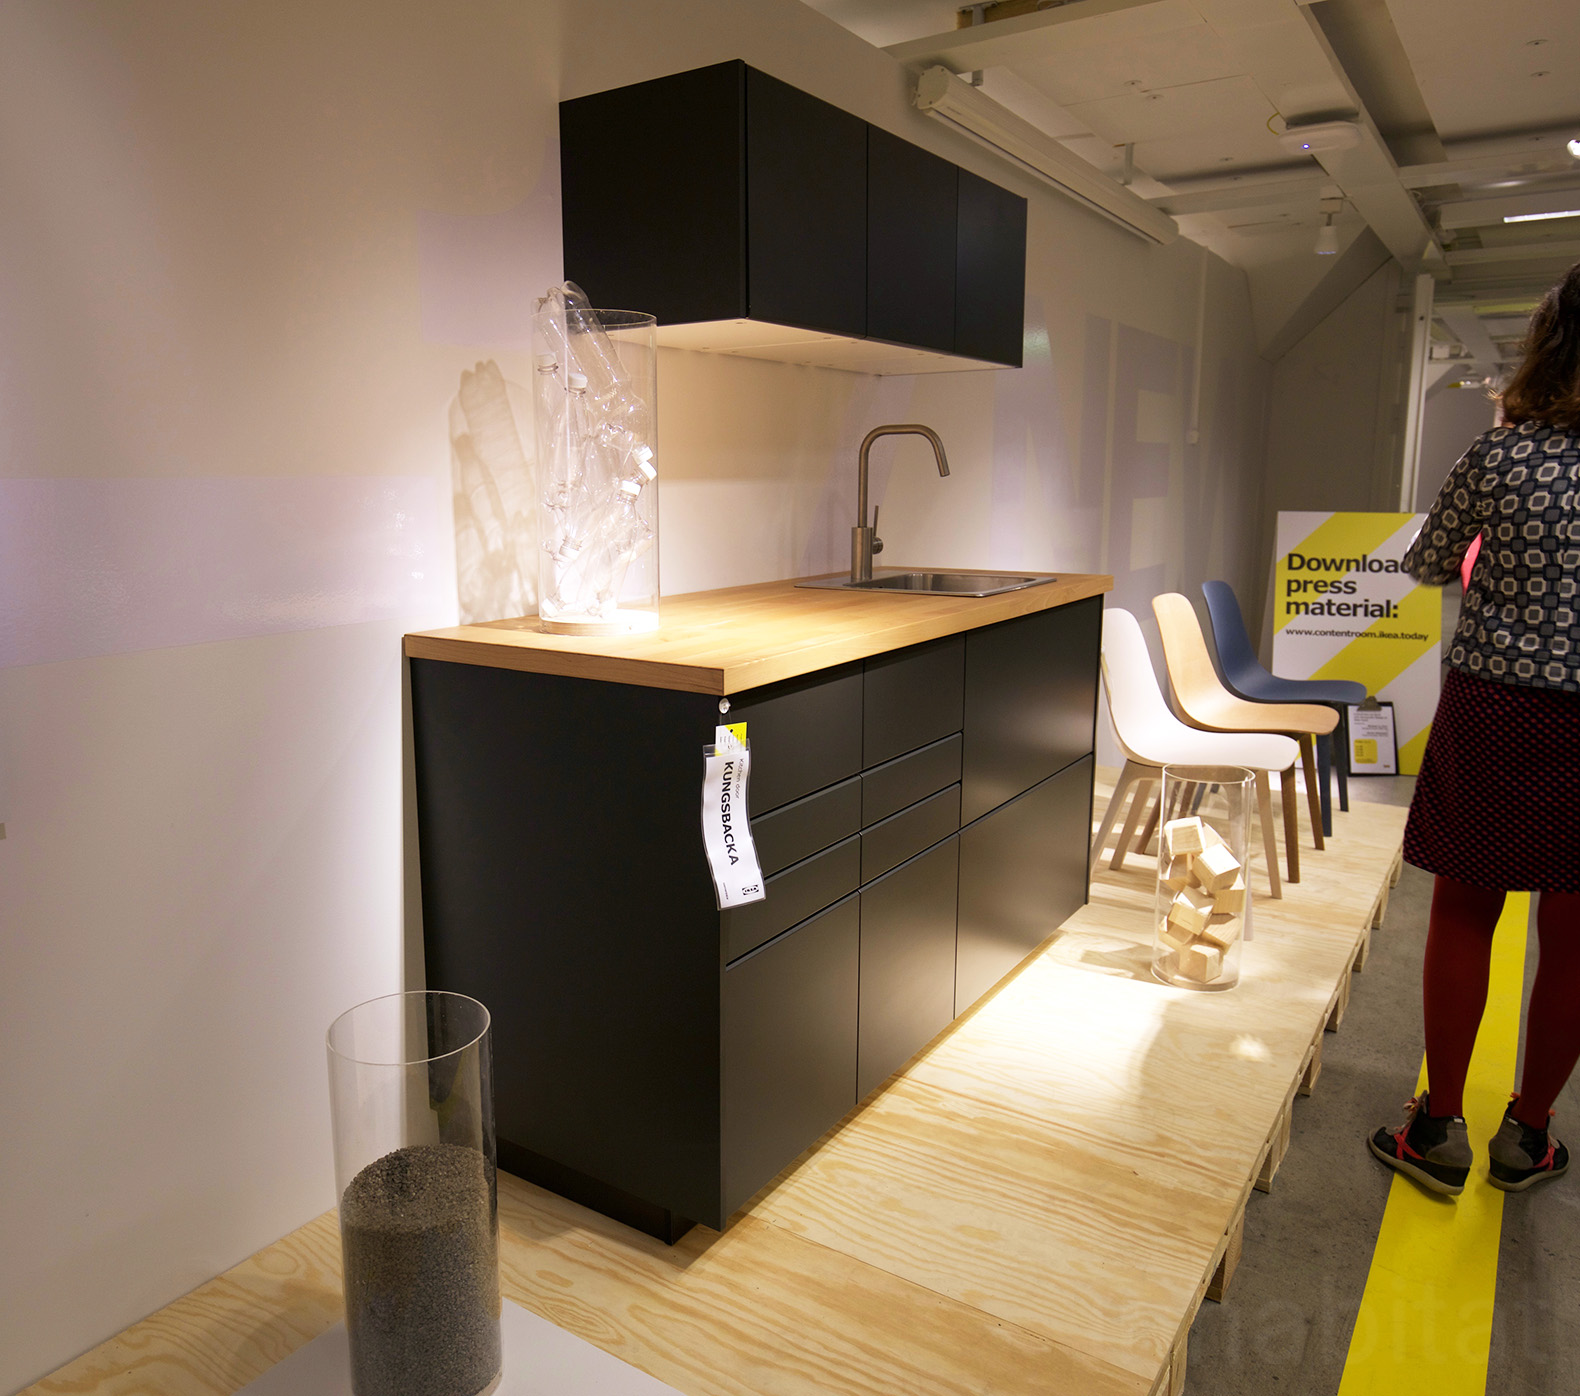 ikea is launching a whole range of u201cno waste u201d products made from